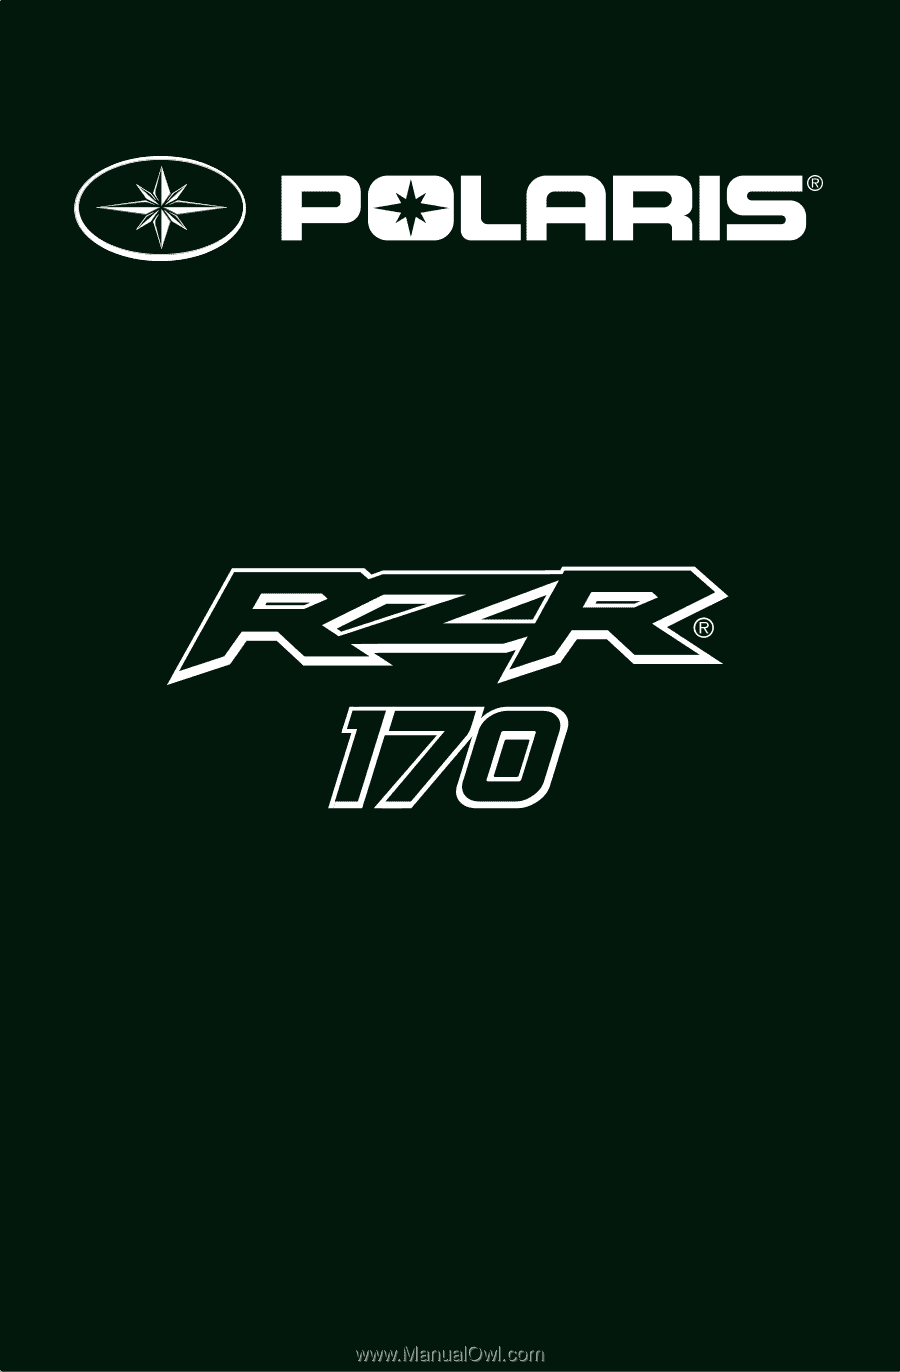 2015 Polaris Rzr 170 Owners Manual 2014 Wiring Diagram Ow Ners